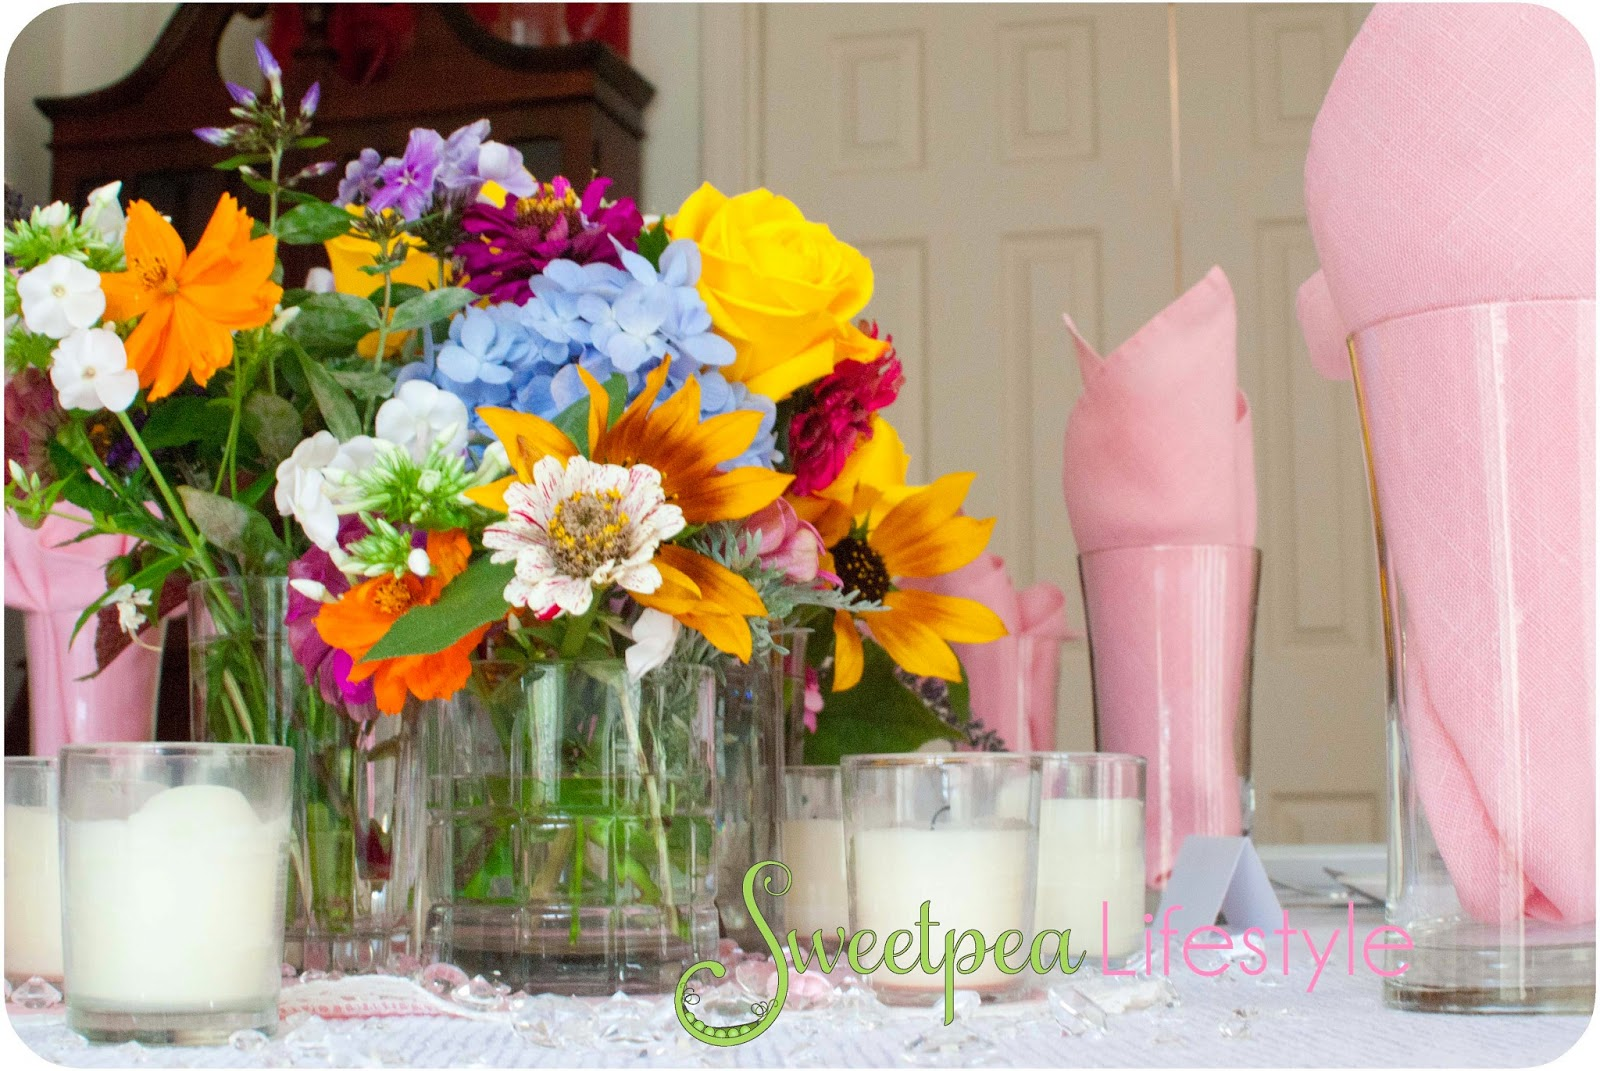 8 Floral Arranging Tips